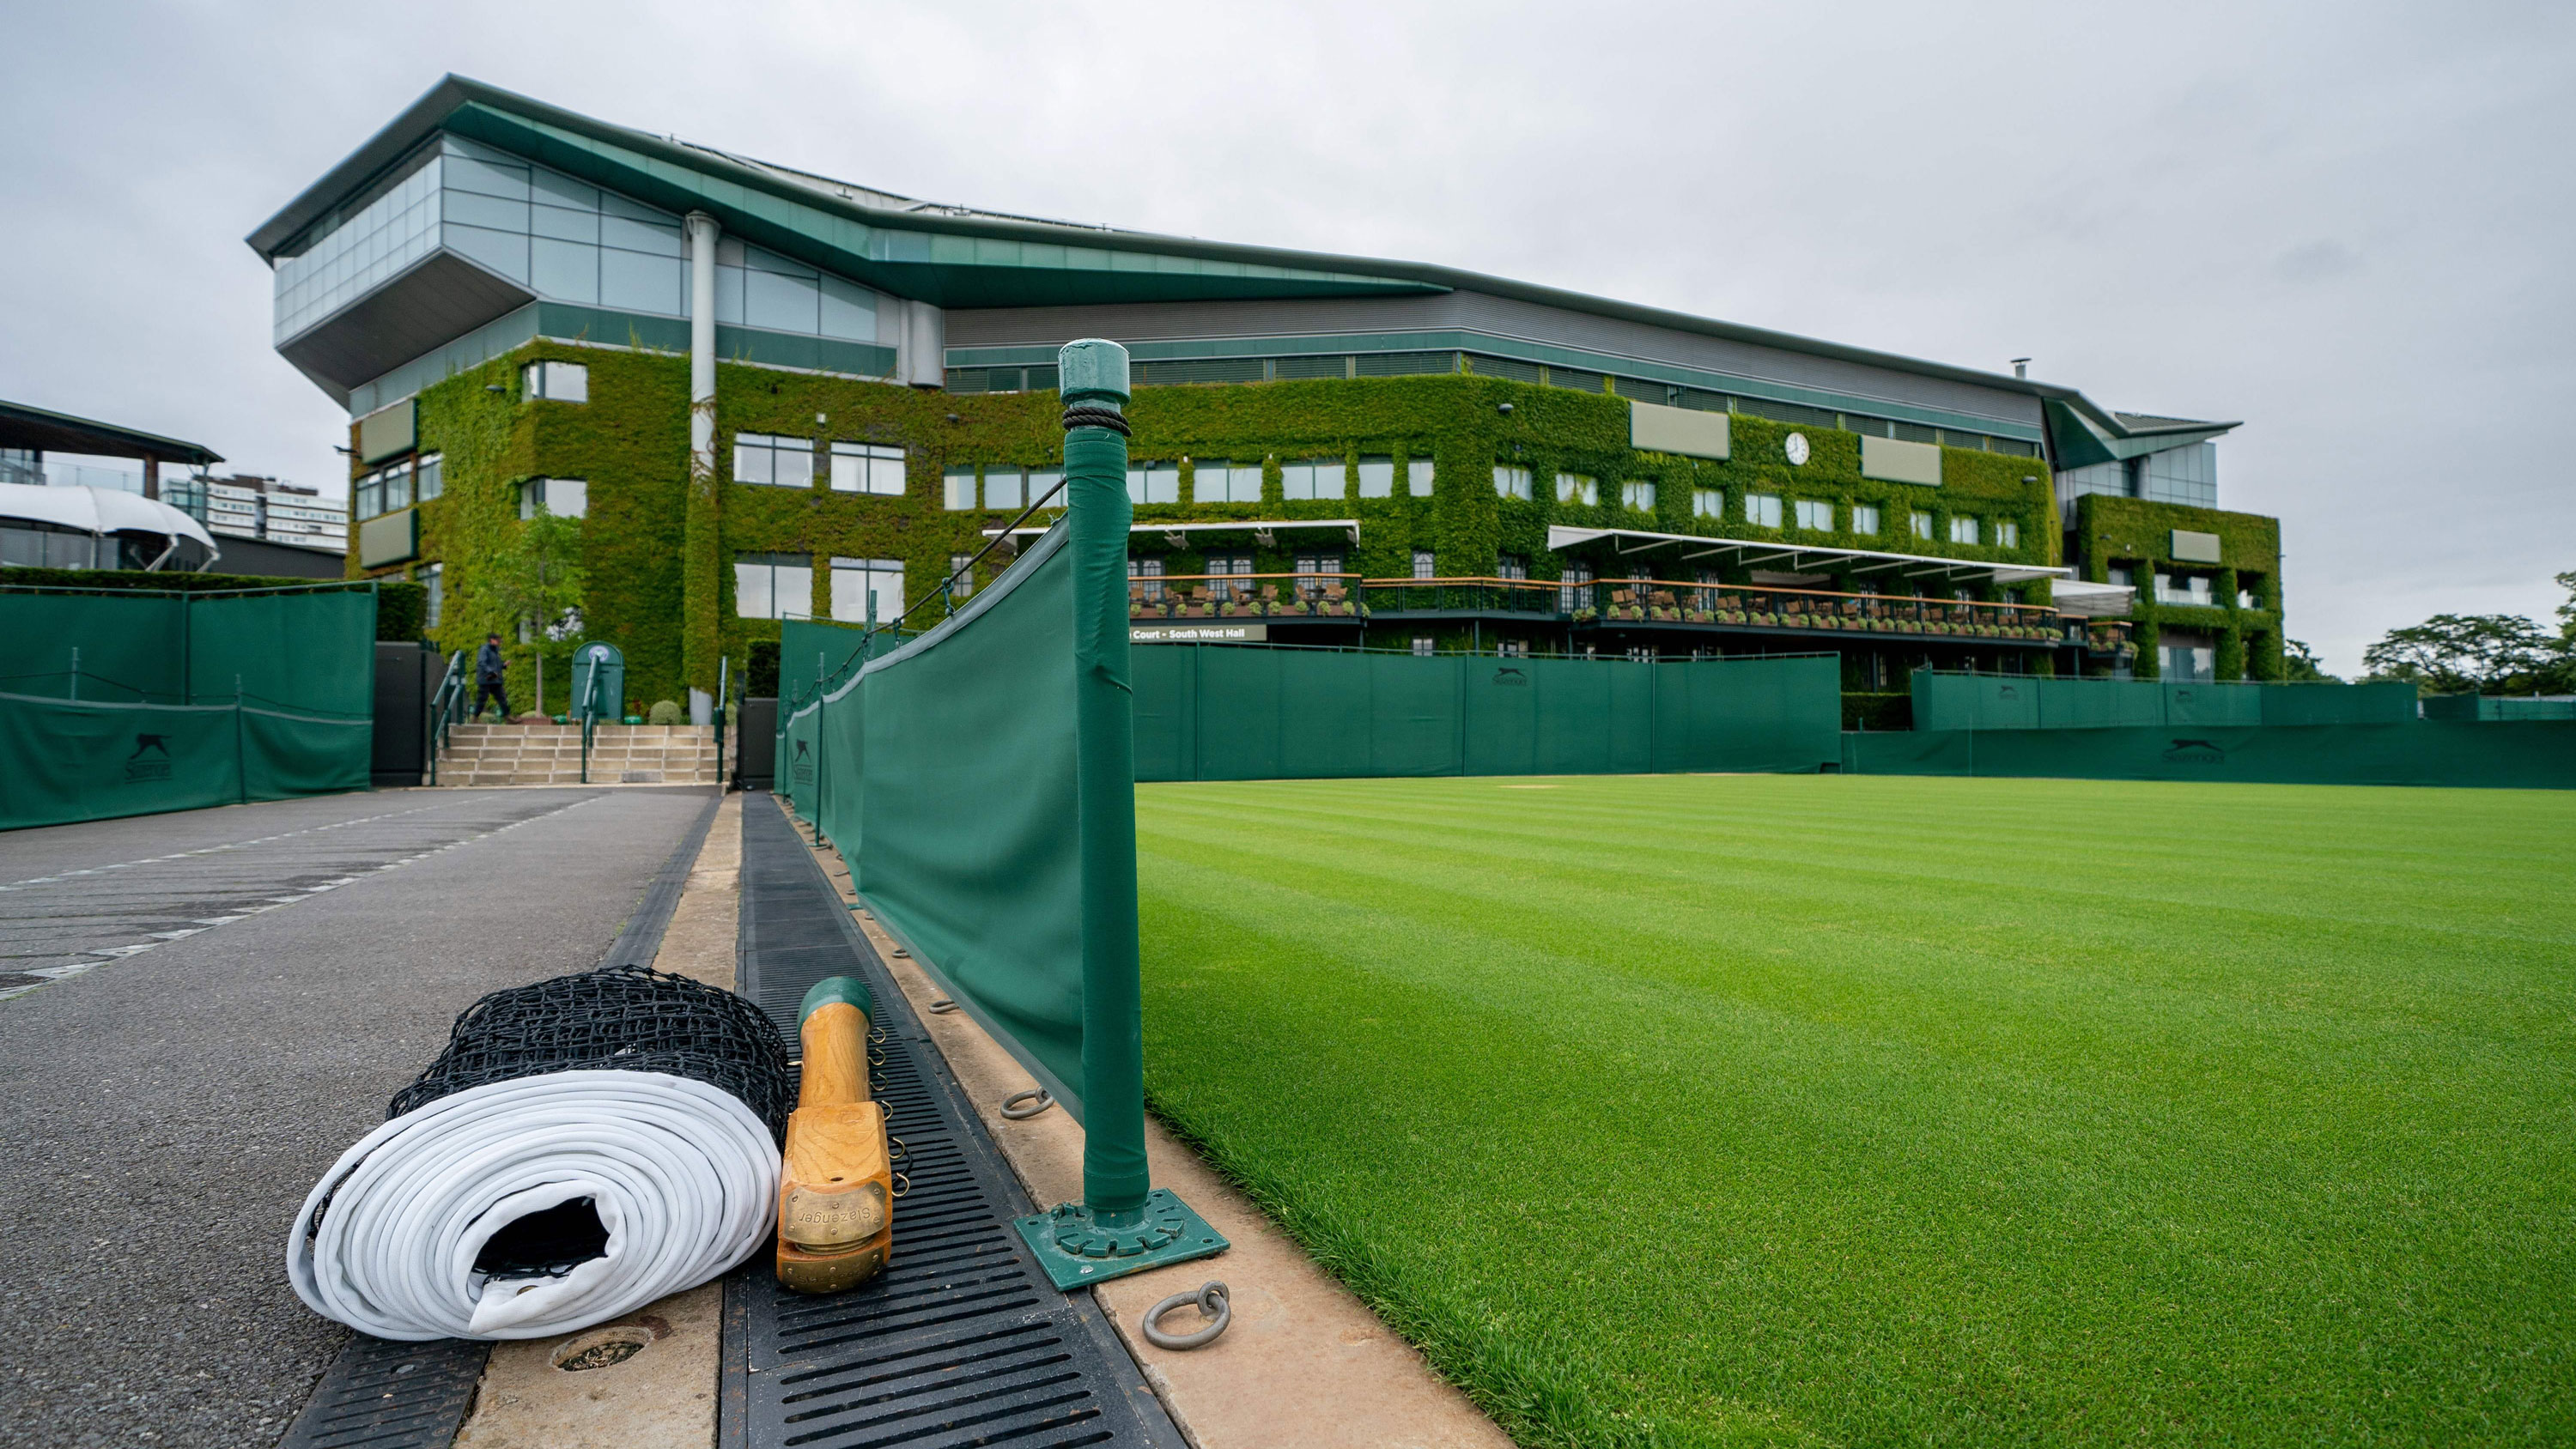 A tennis net is rolled up at the All England Lawn Tennis Club in west London on June 27, 2020.